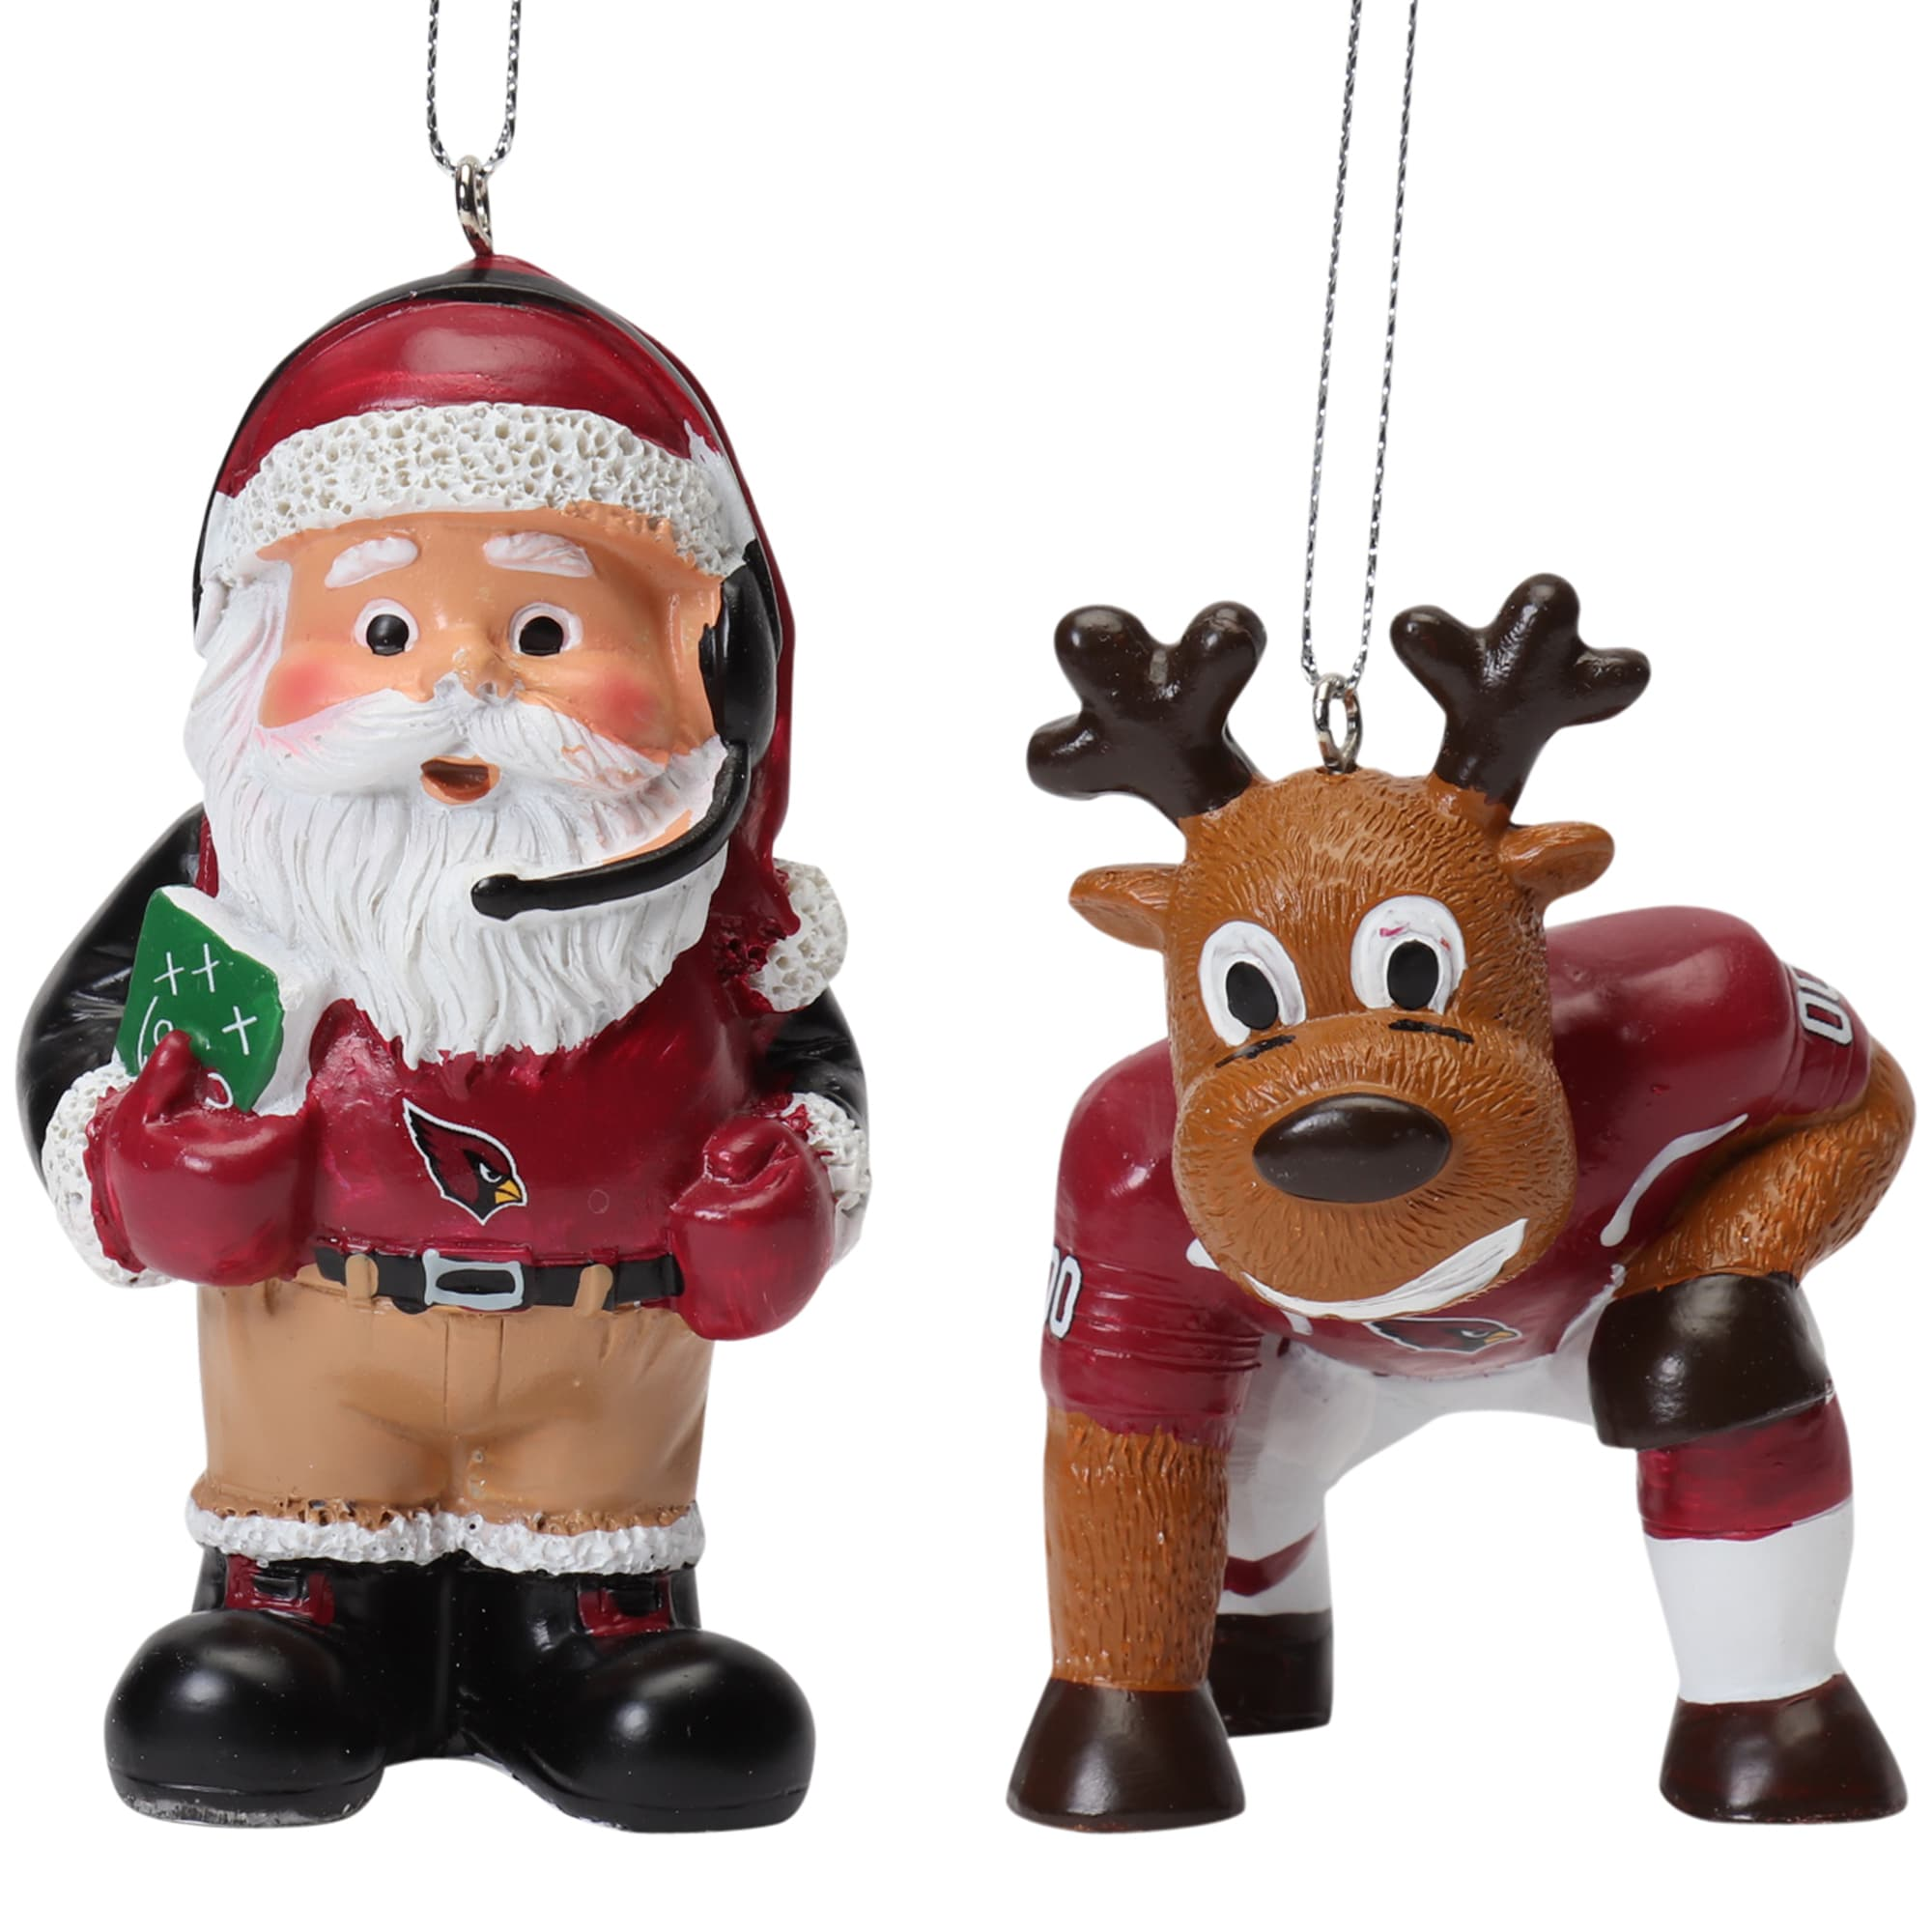 Arizona Cardinals Reindeer Games & Santa 2-Pack Ornament Set